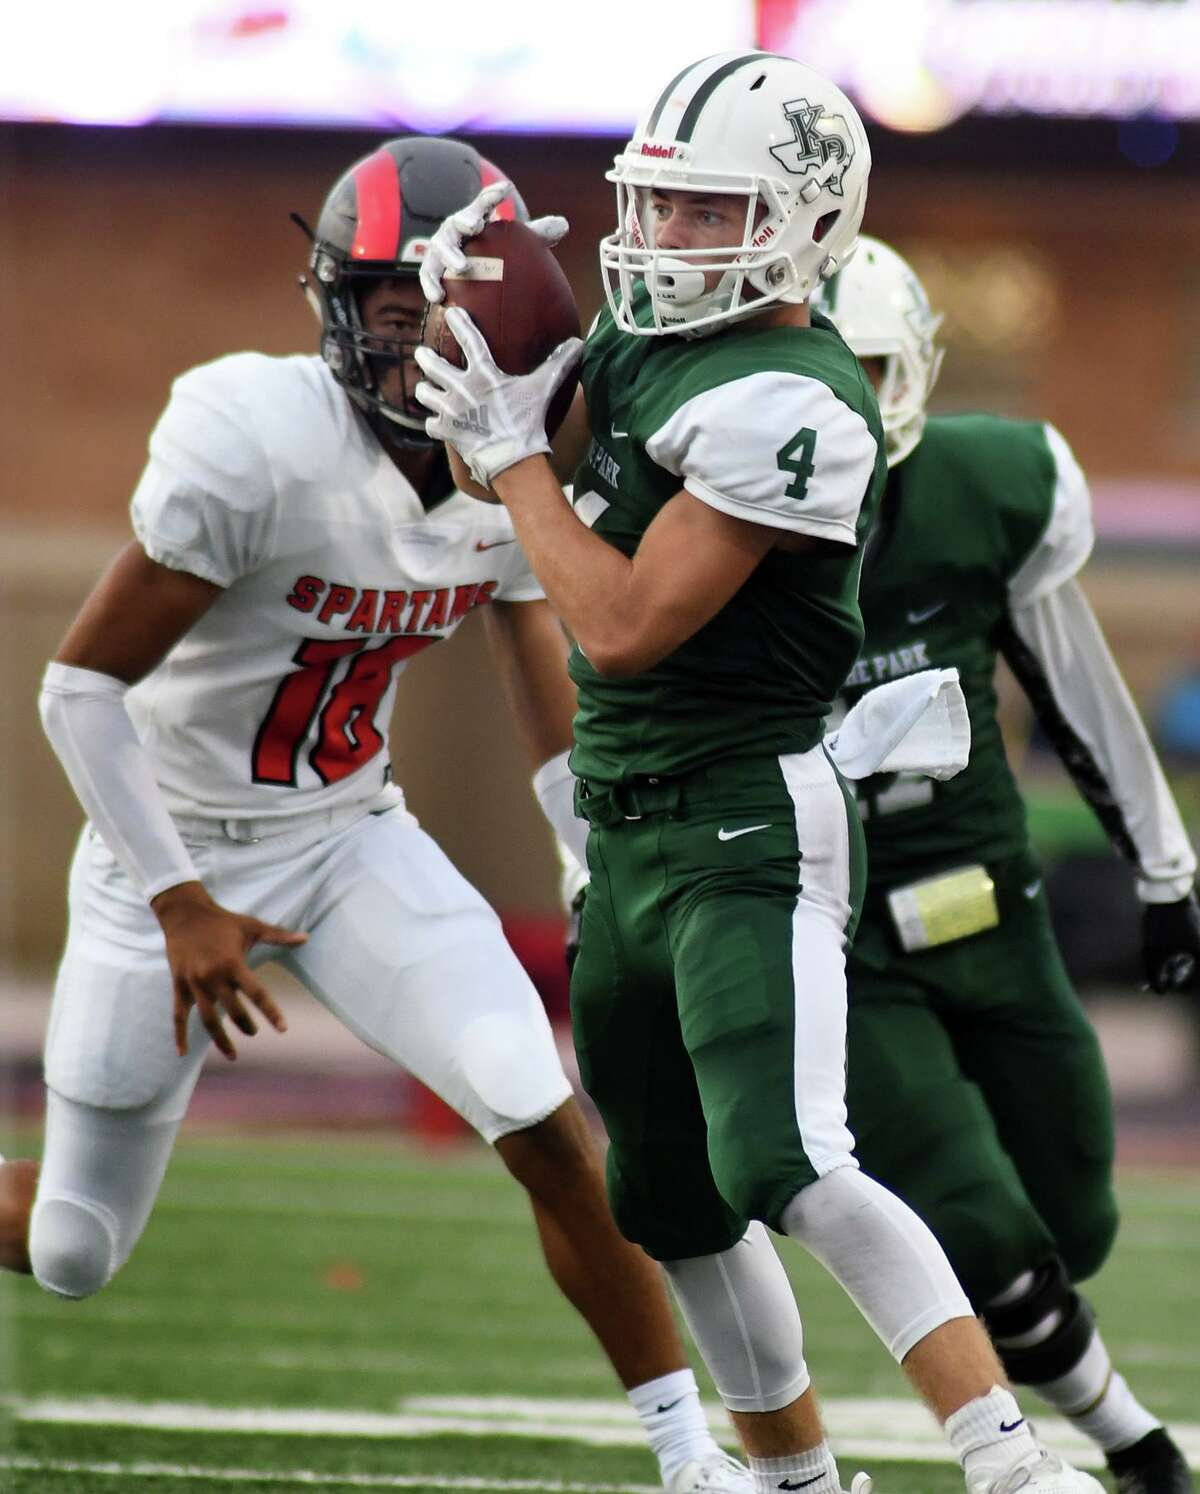 Kingwood Park junior wide receiver Canen Adrian (4) finishes a catch against a Porter defender in the second quarter of their District 9-5A matchup at Turner Stadium in Humble on Sept. 29, 2018.